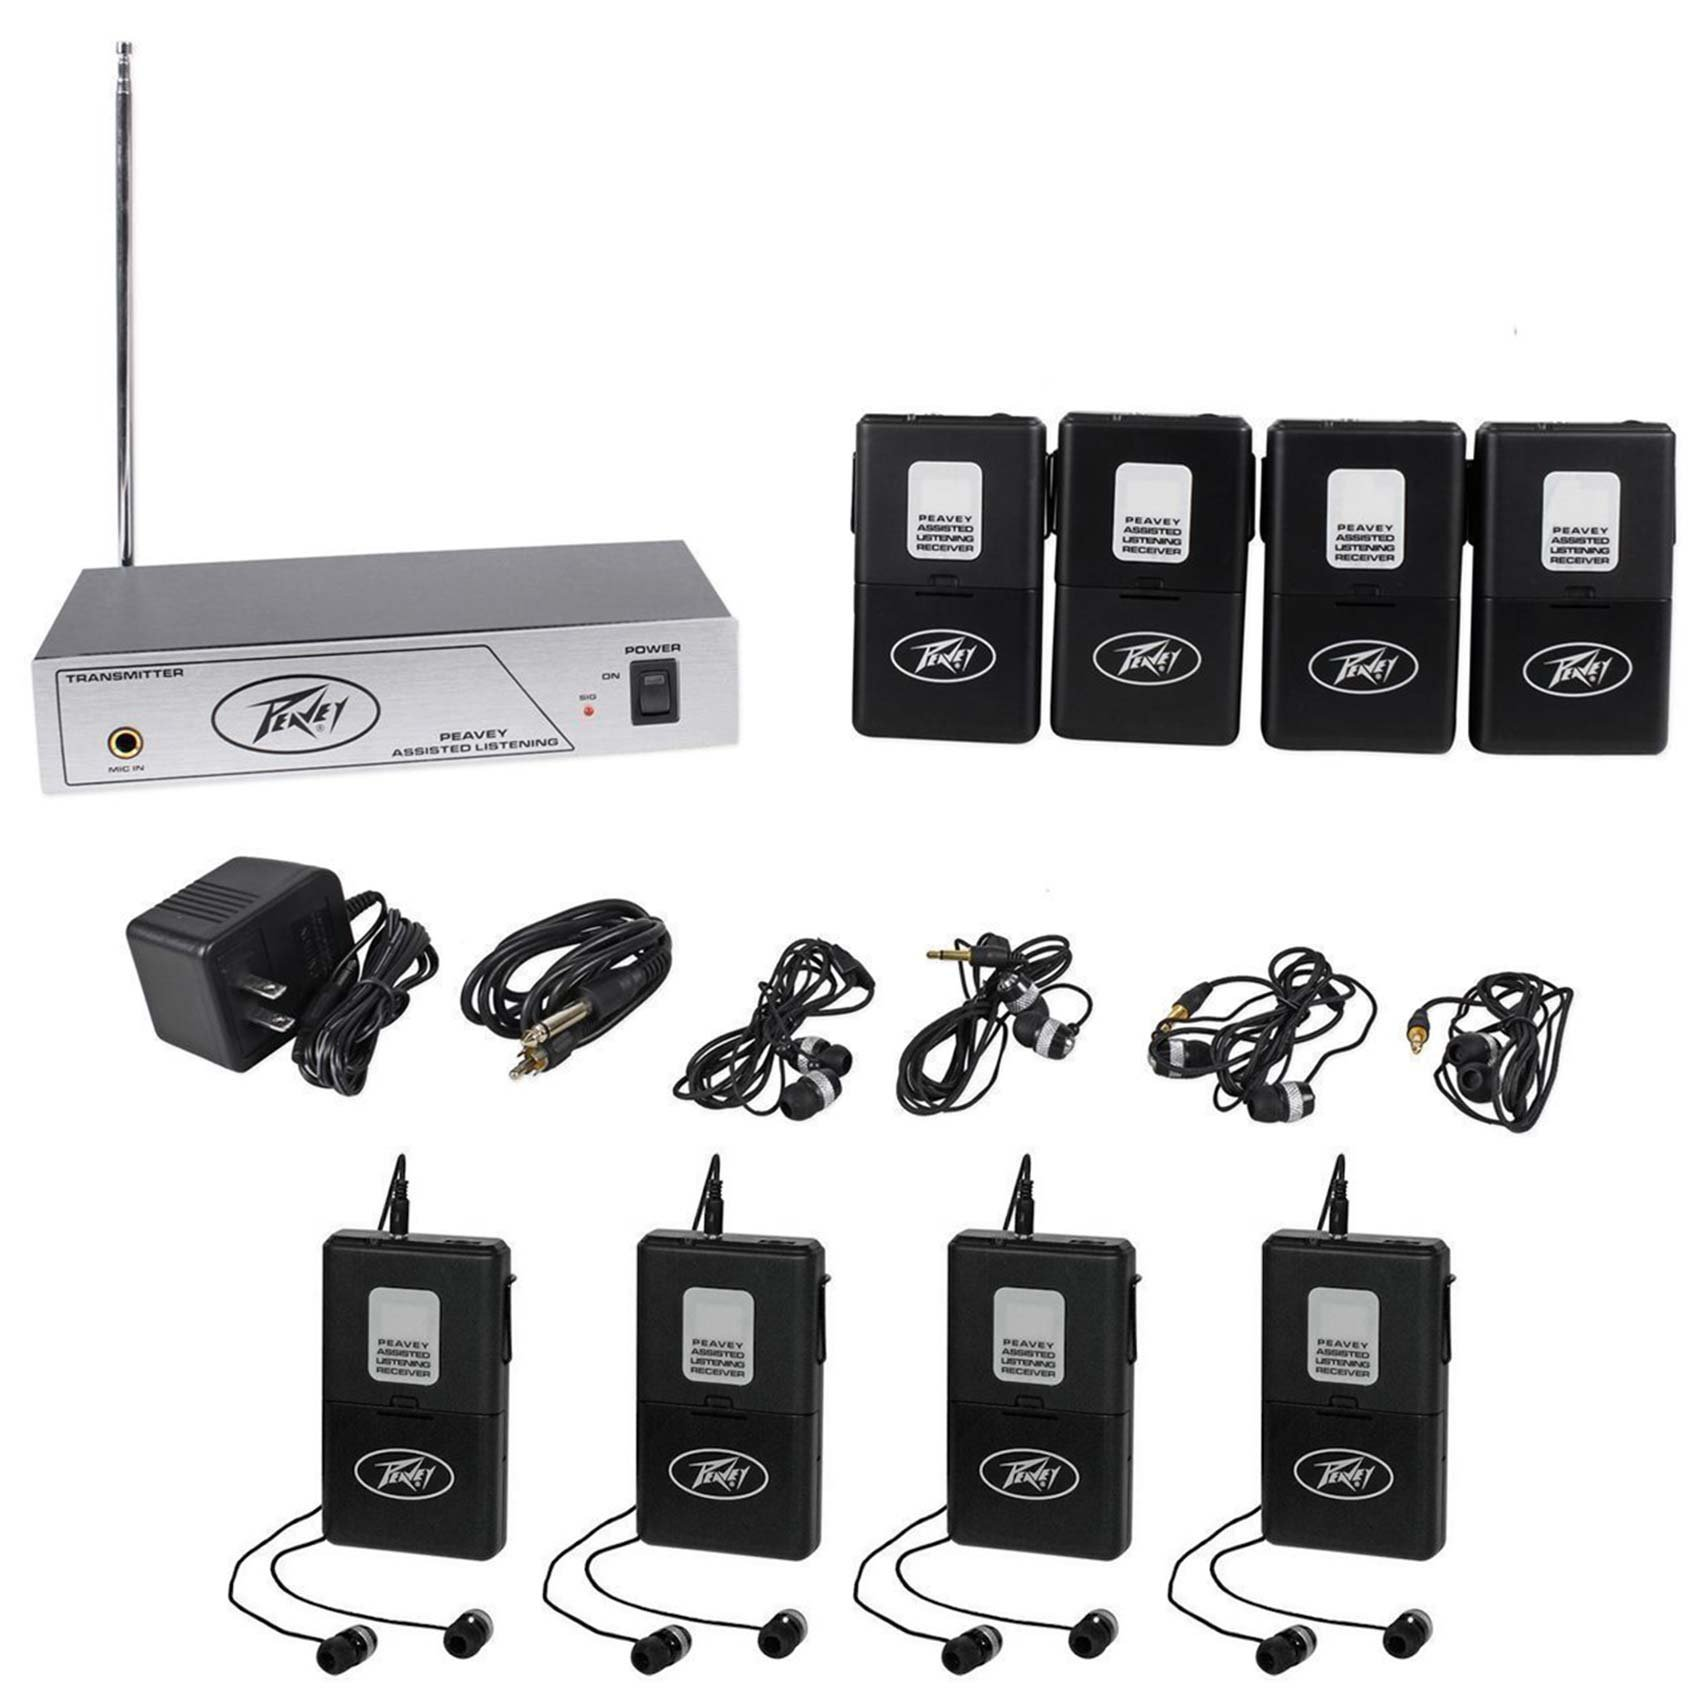 Package: Peavey ALS 75.9 Mhz Assisted Listening System Transmitter And Four Receivers With Ear Buds + (4) Peavey ALSR 75.9 Mhz Assisted Listening Receivers Body Pack for ALS 75.9 System